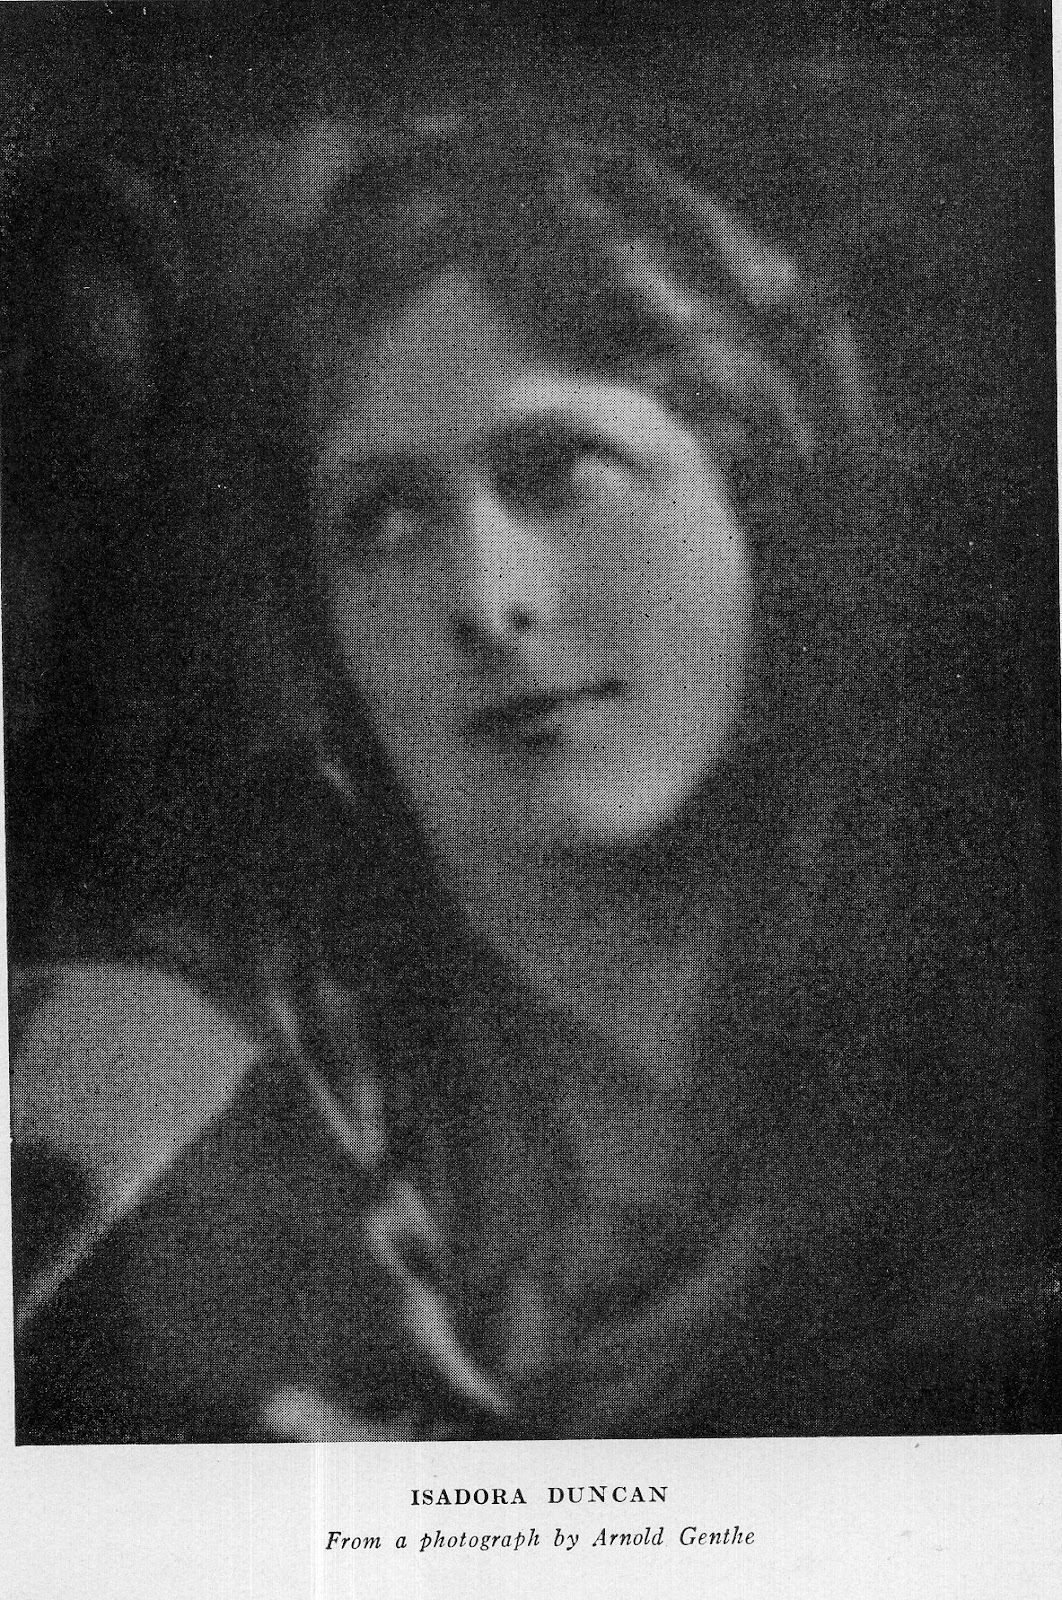 the life of isadora duncan Summary about the artistic work and life of isadora duncan includes images, videos and related links.